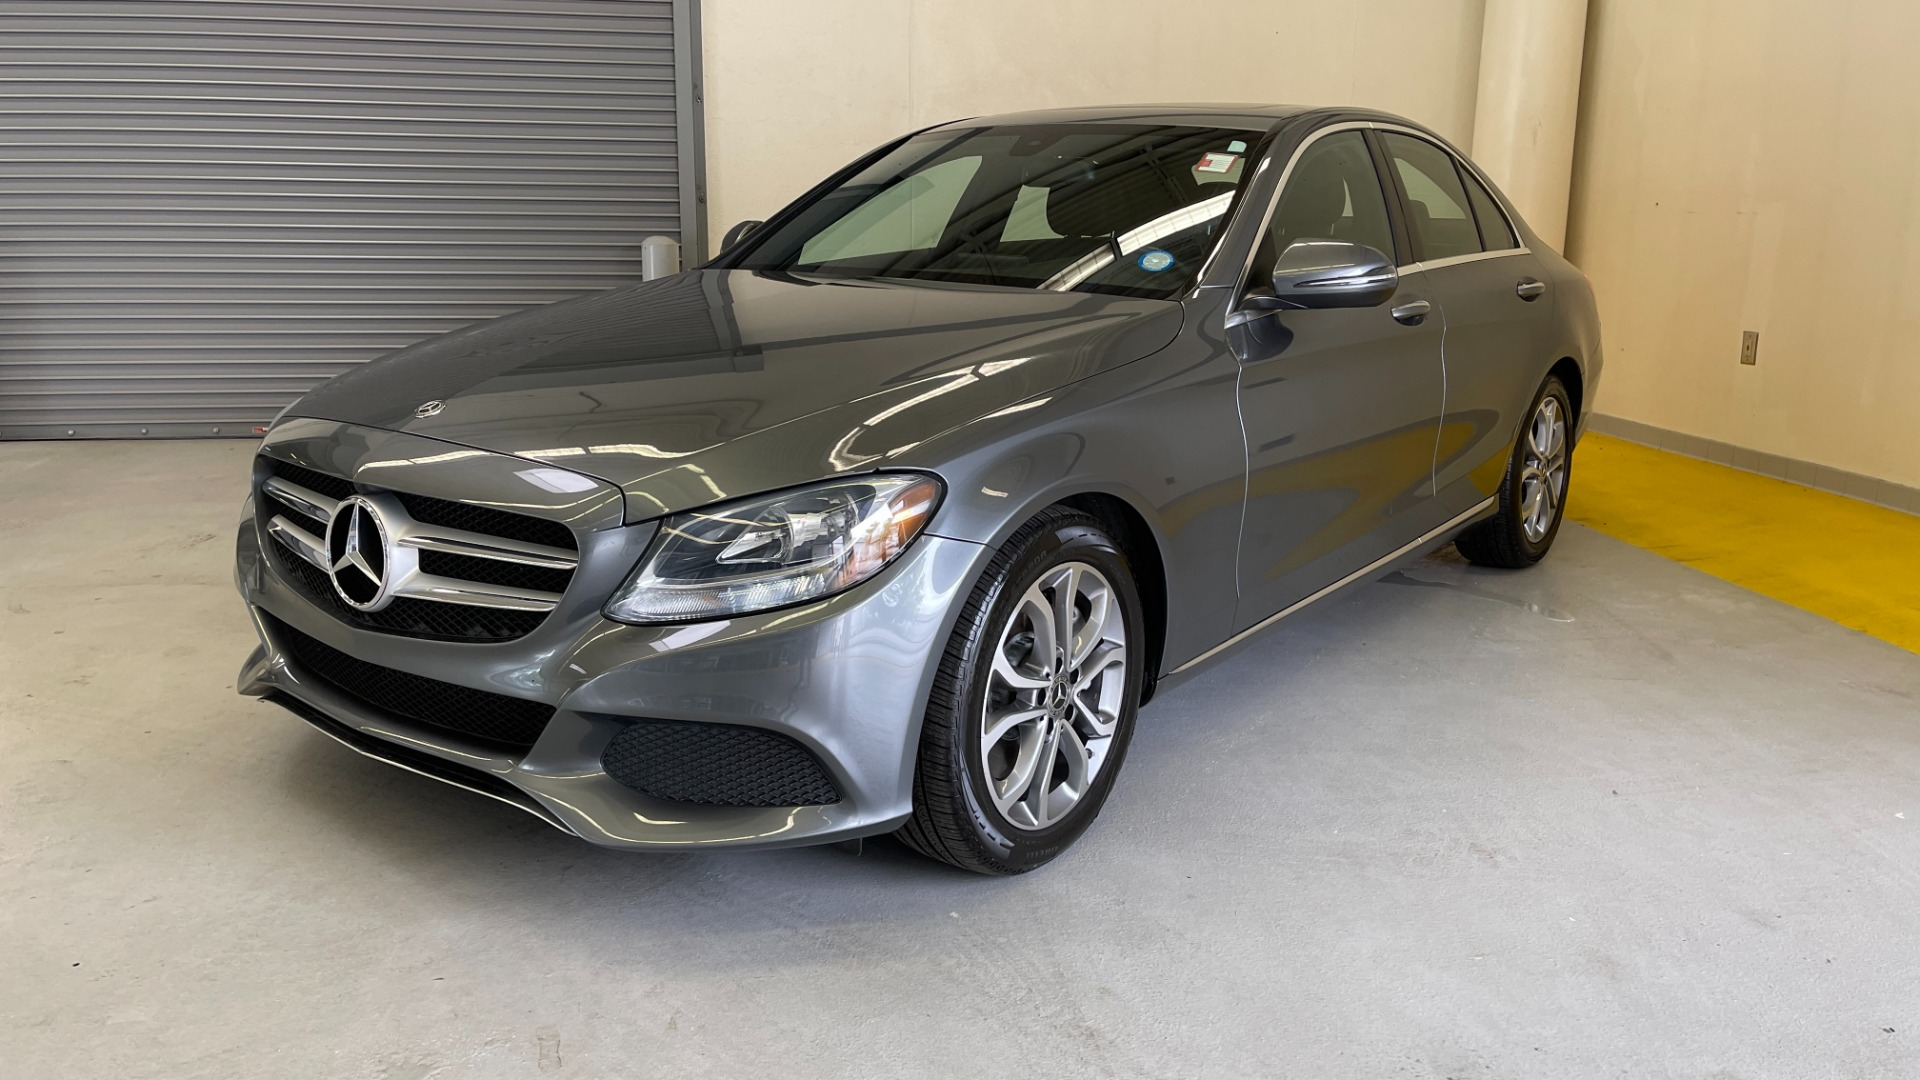 Used 2018 Mercedes-Benz C-CLASS C 300 PREMIUM / SUNROOF / APPLE CARPLAY / HTD STS / REARVIEW for sale $31,795 at Formula Imports in Charlotte NC 28227 3